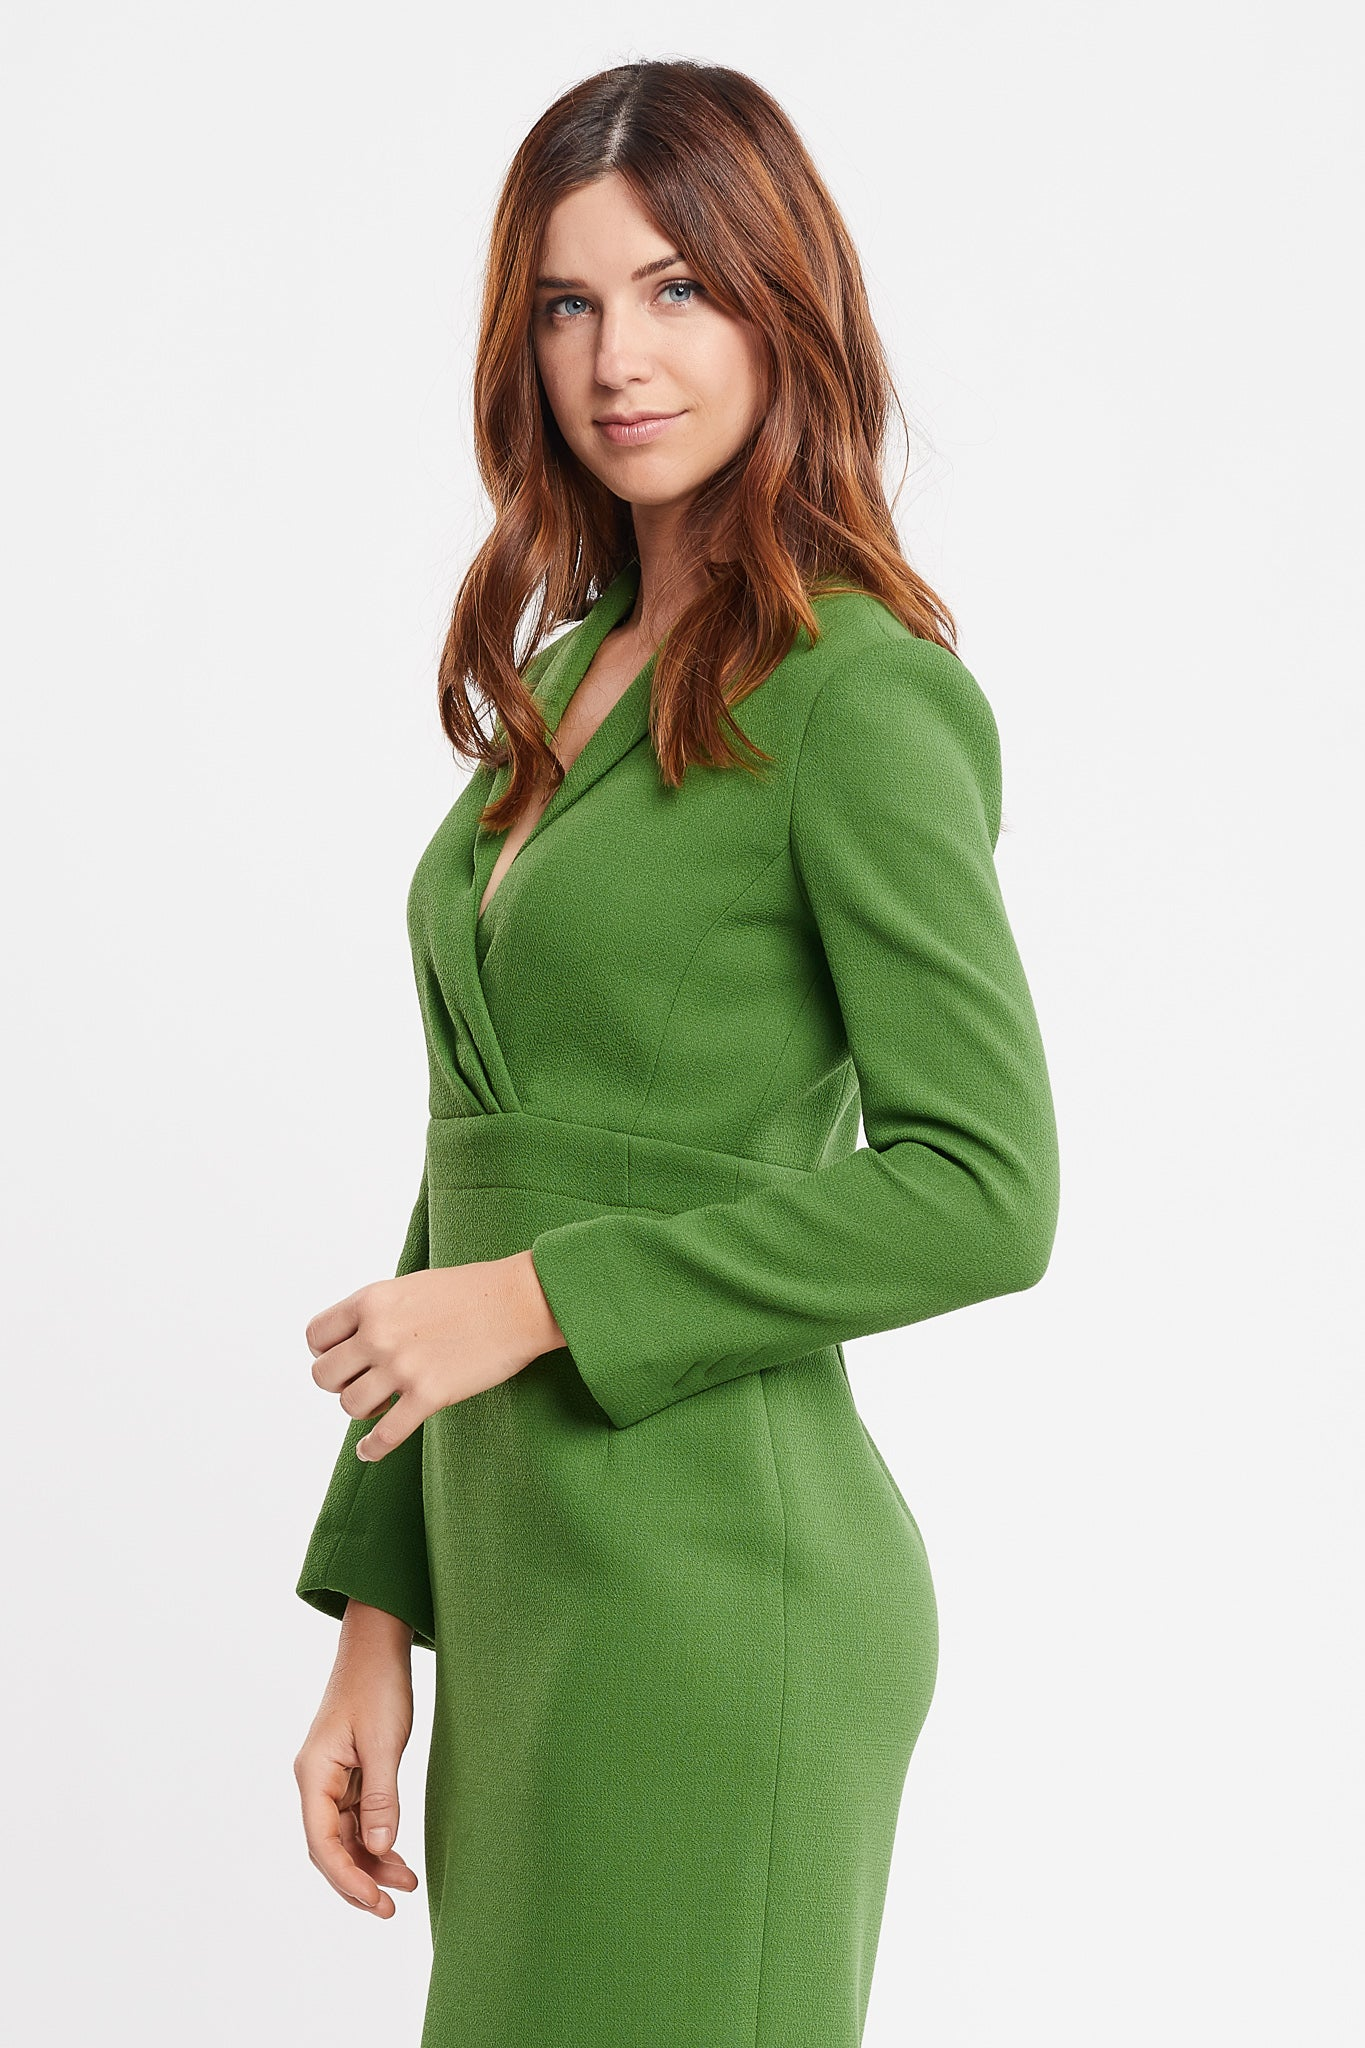 Sandra Long Sleeve Sheath Green Work and Cocktail Dress